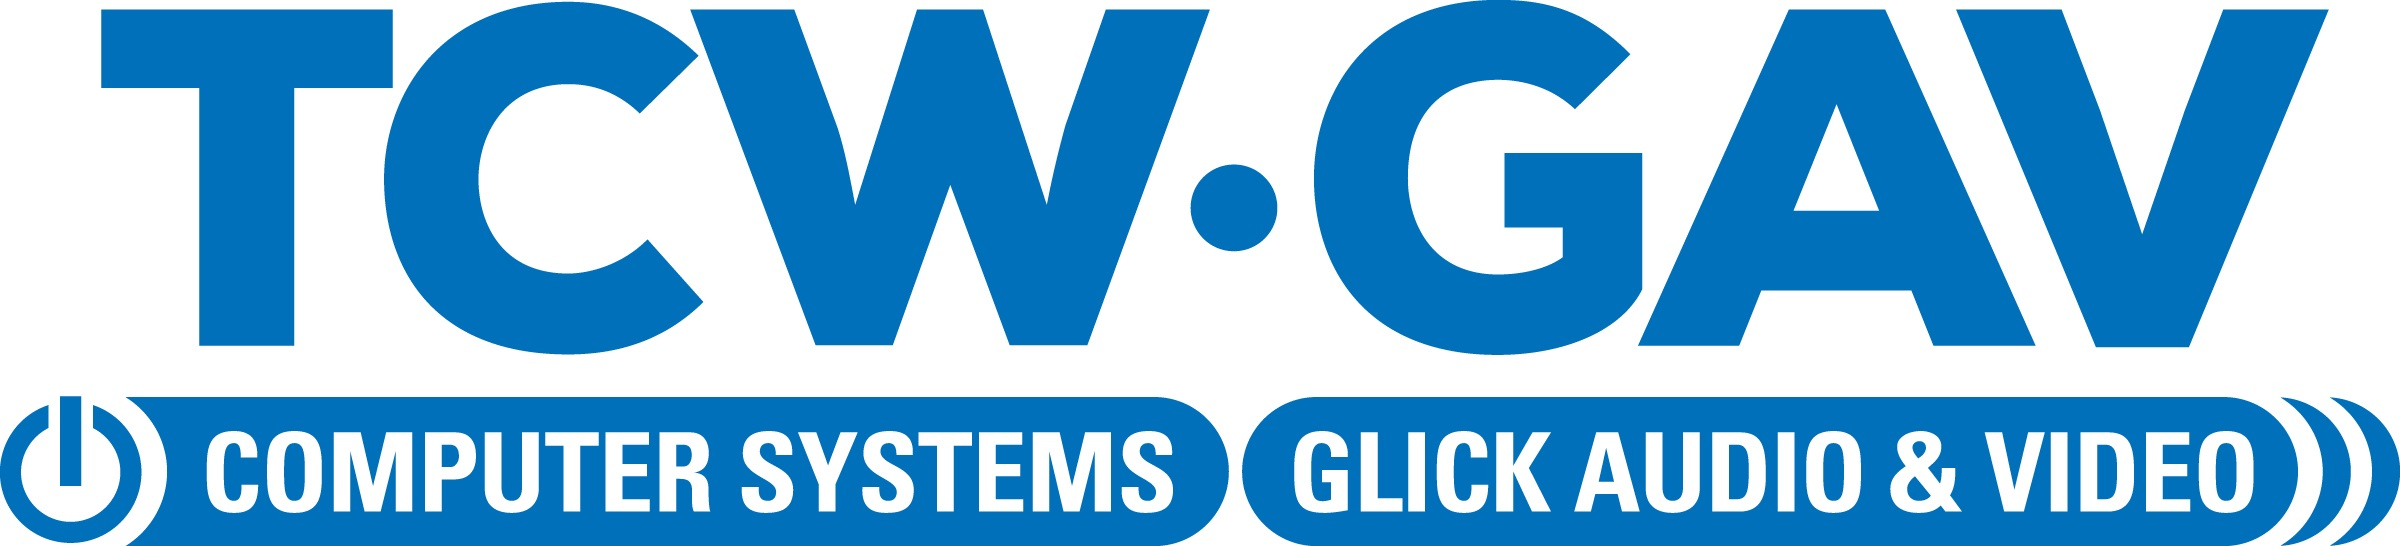 It's here, our new TCW-GAV combined website and logo!